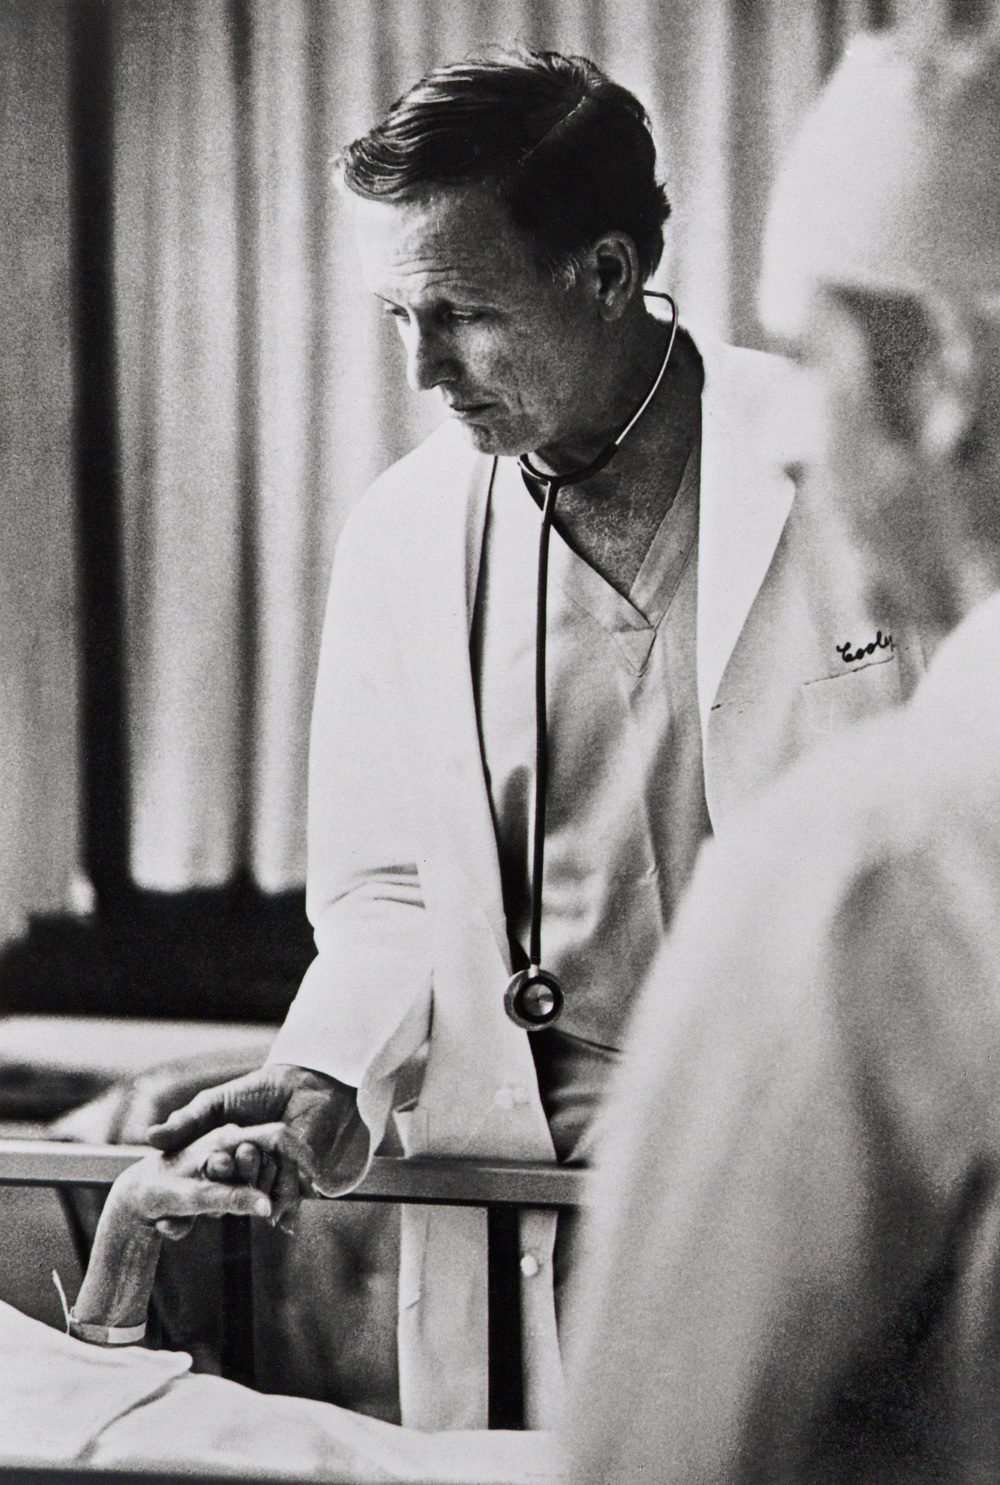 Dr. Cooley with a patient in the ICU during the 1970s.